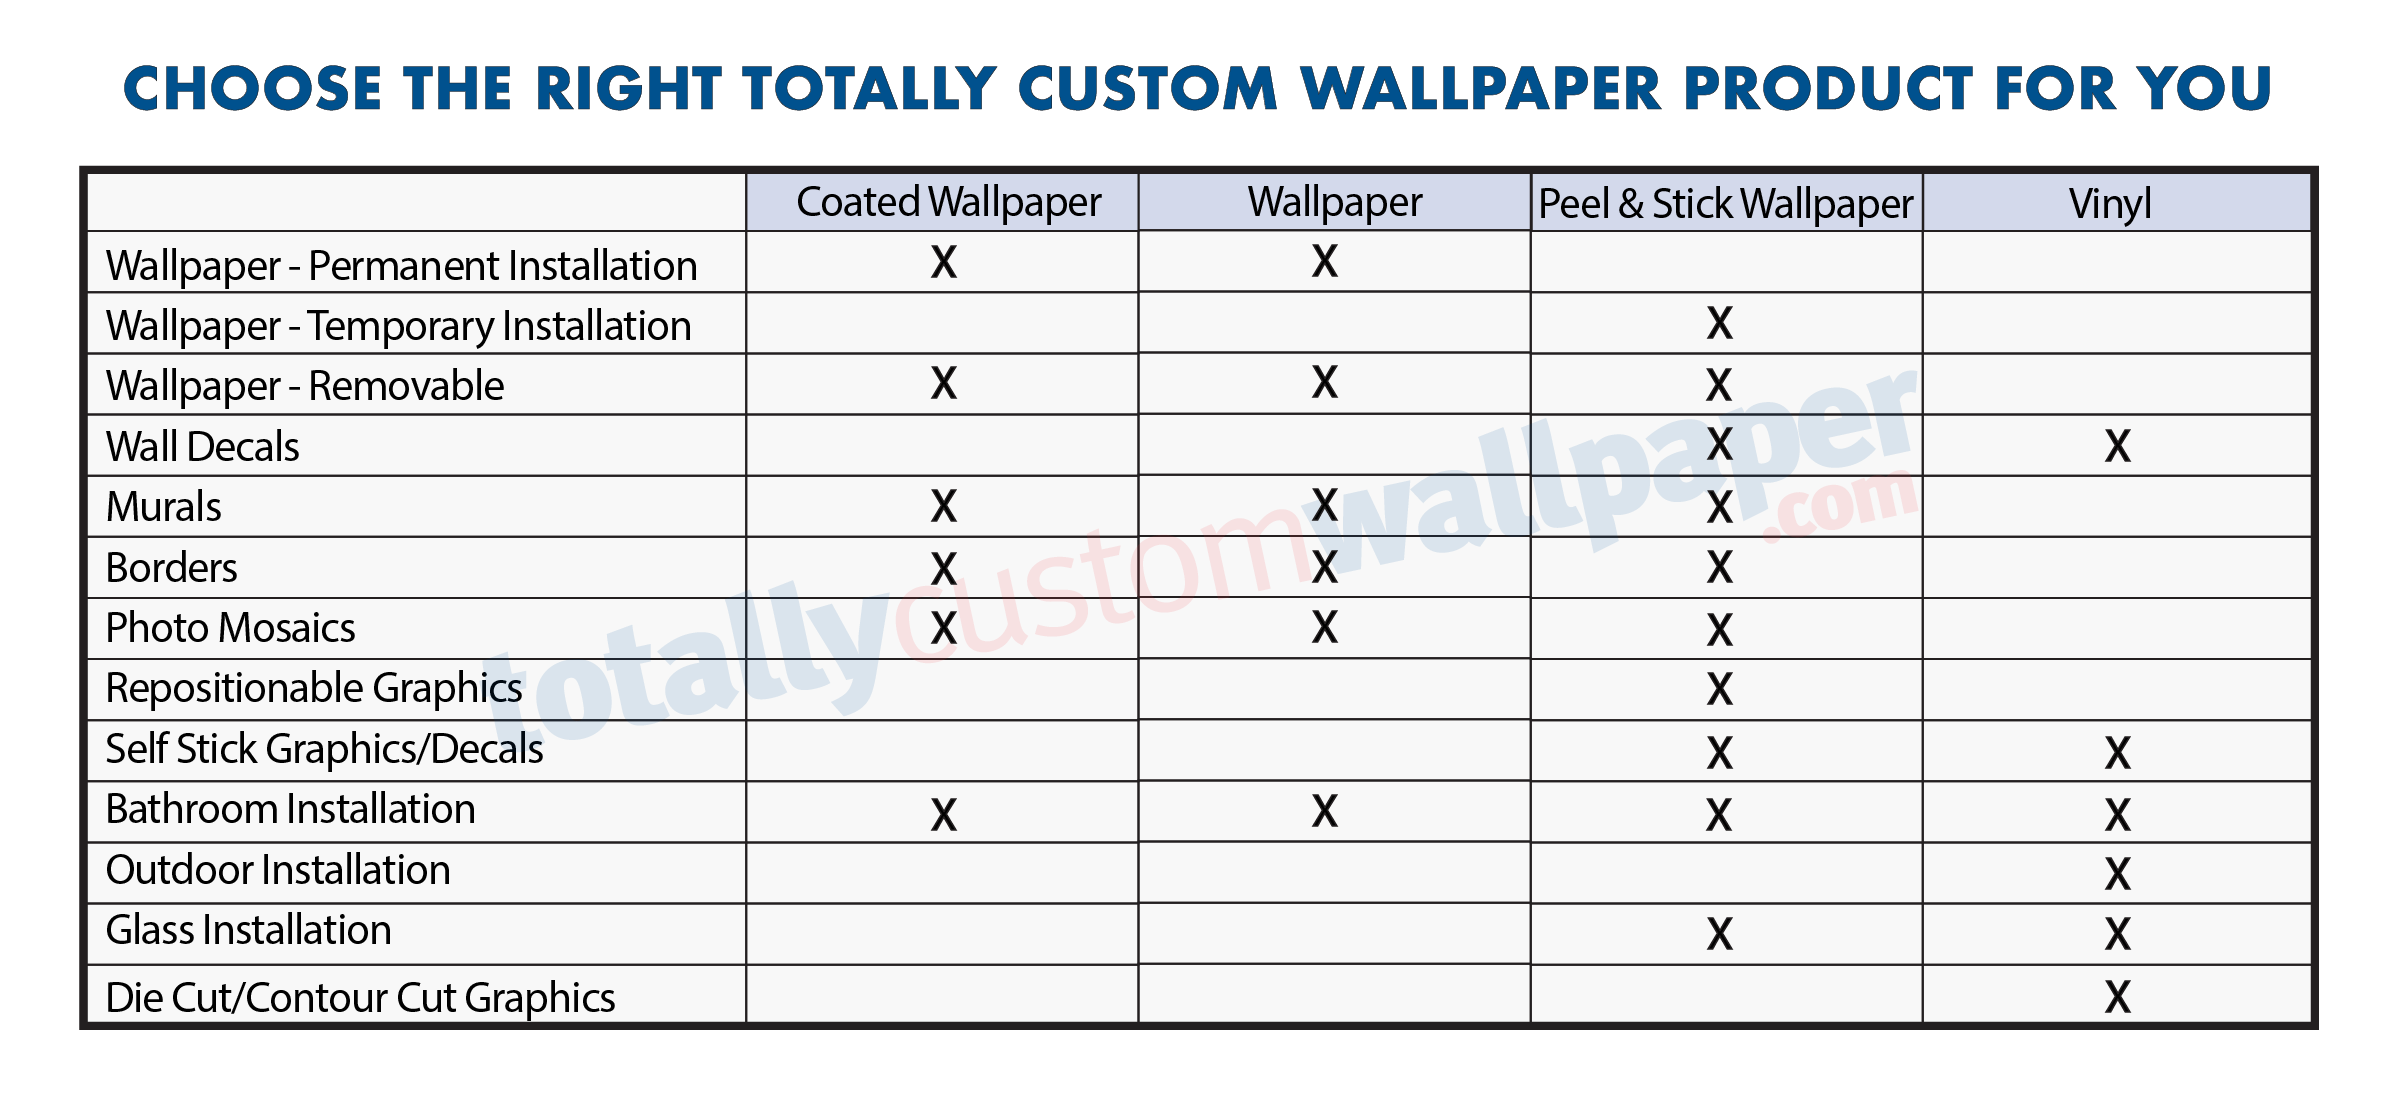 Choose The Right Wallpaper Product For You Totally Custom Wallpaper